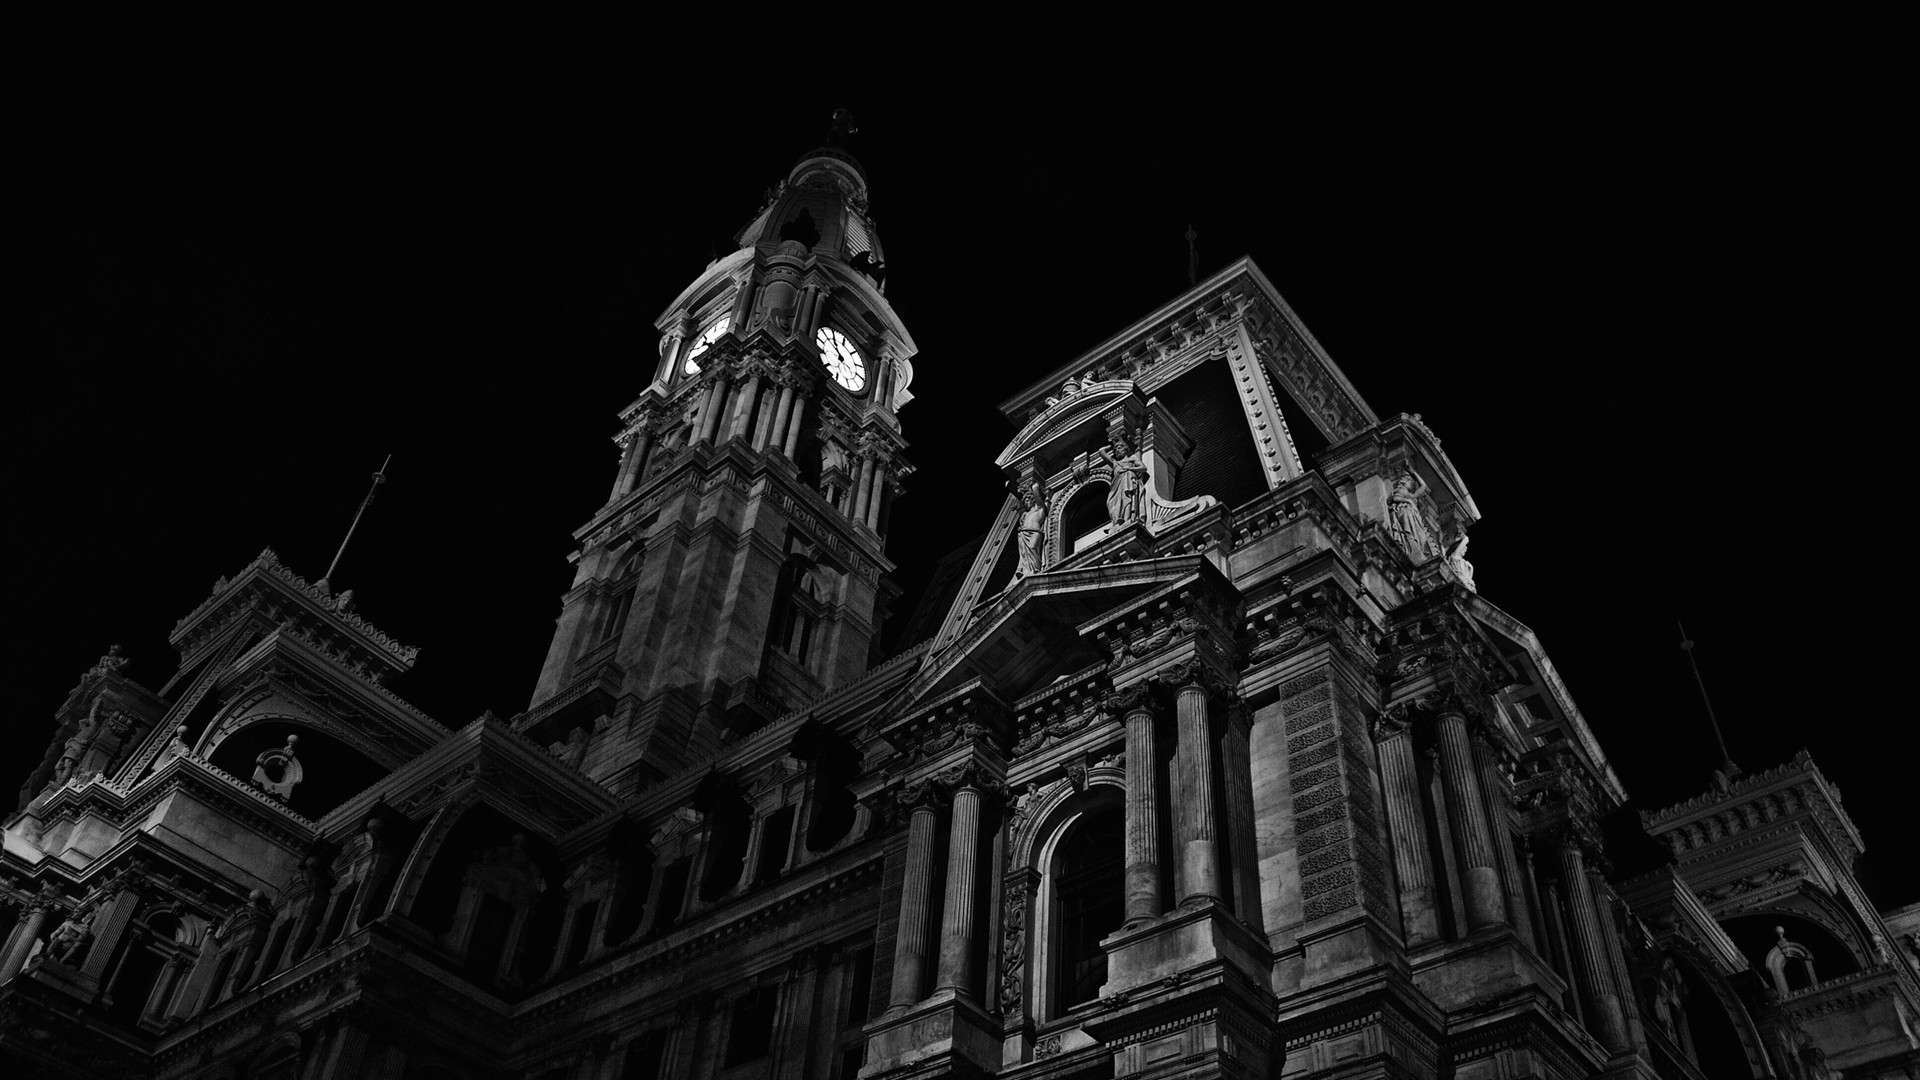 black pictures | Black And White Hd Building Full P In | #714882 #